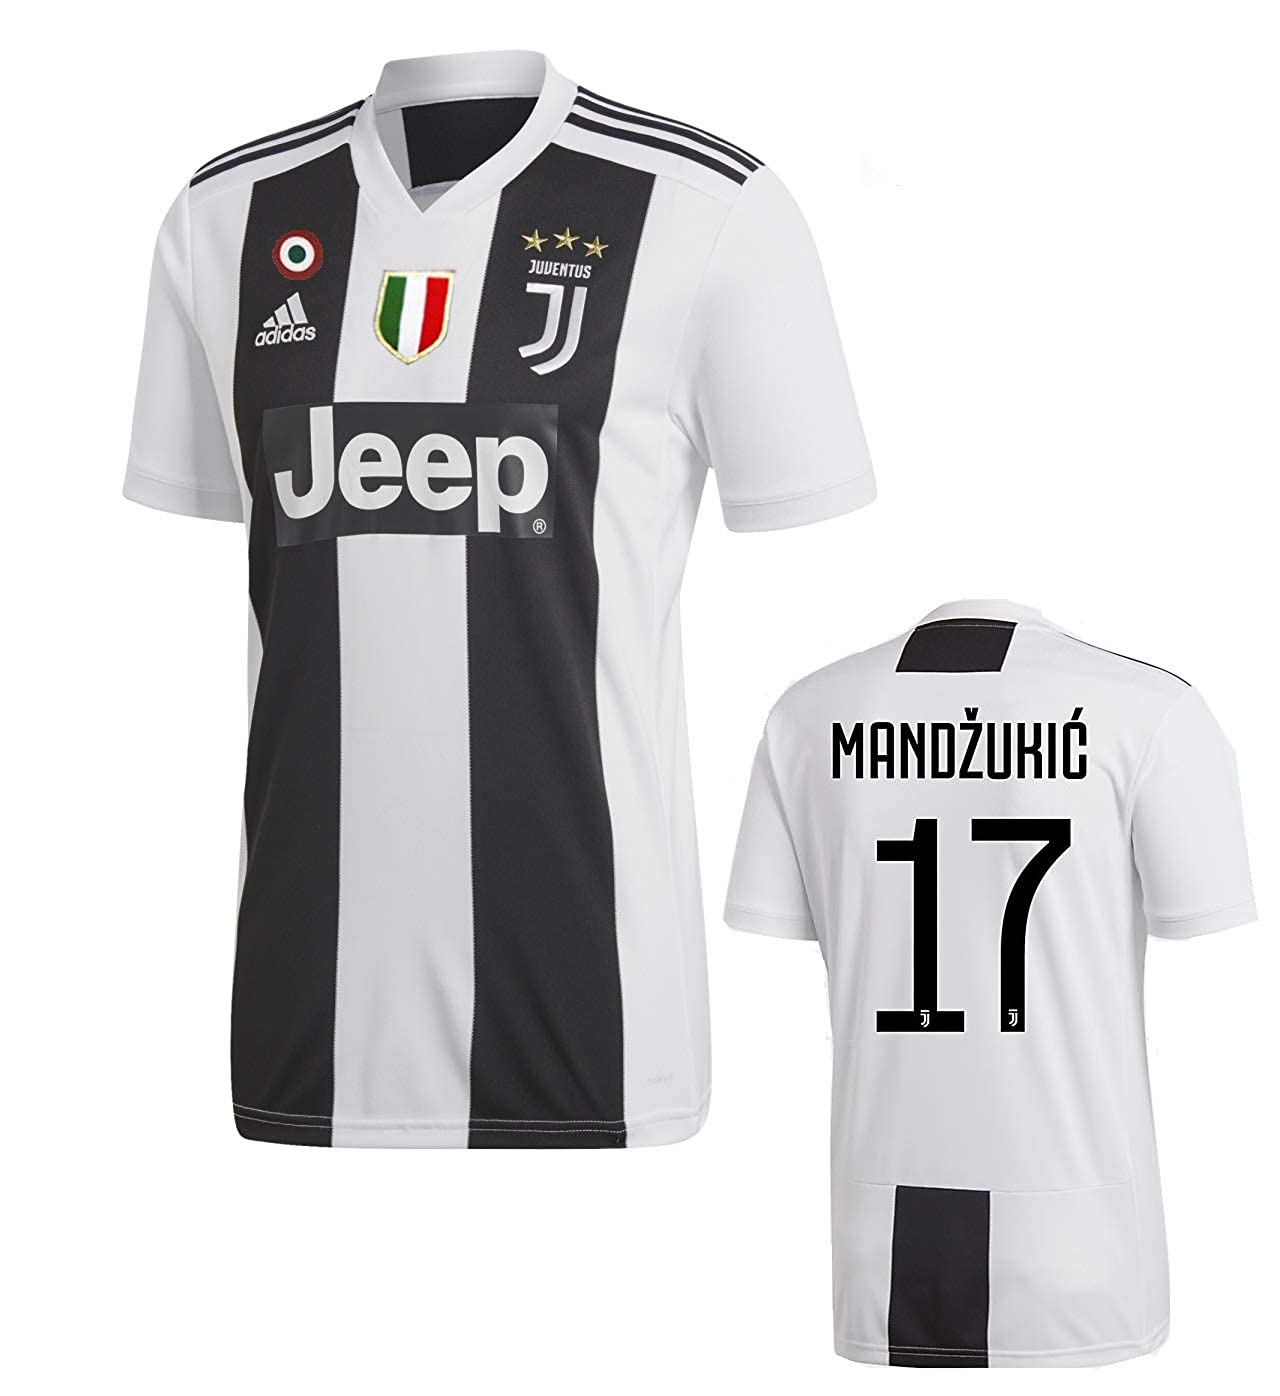 finest selection 410a1 b0af4 Amazon.com: Juventus Mandzukic Home Jersey 2018/19 Original ...